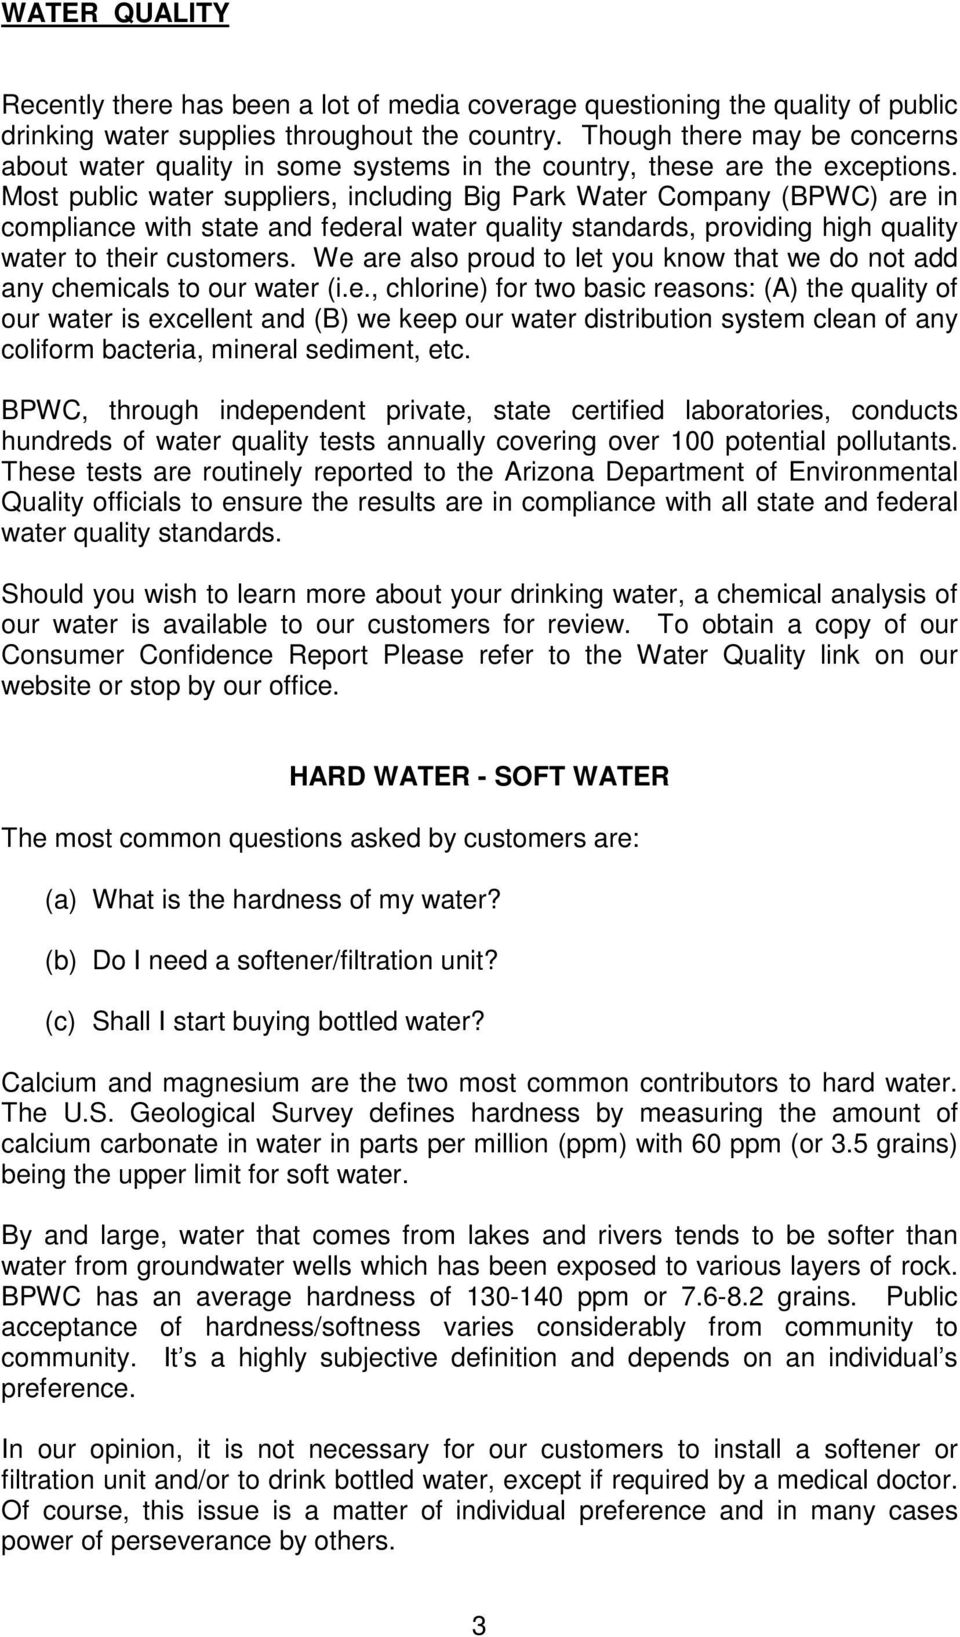 Most public water suppliers, including Big Park Water Company (BPWC) are in compliance with state and federal water quality standards, providing high quality water to their customers.